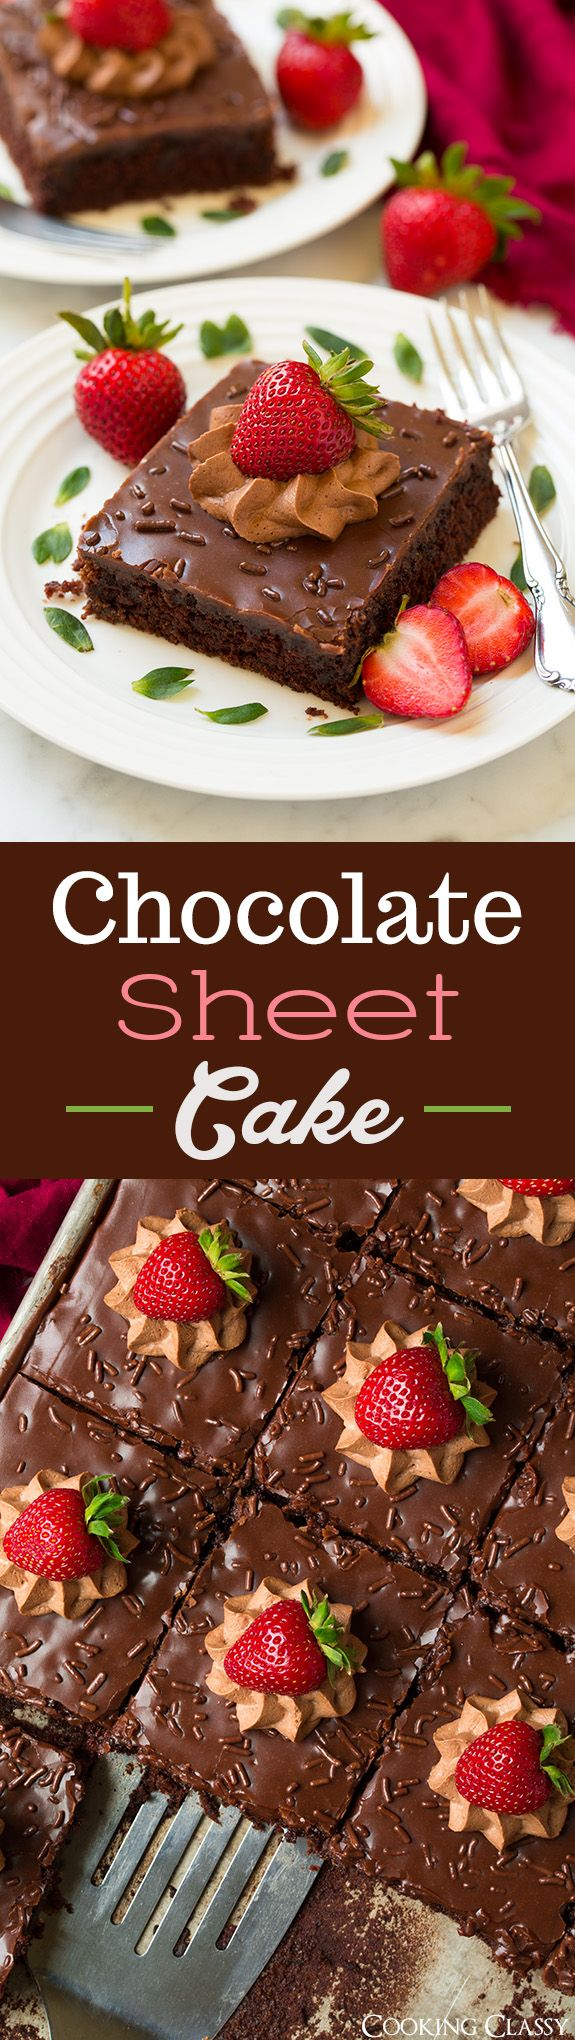 Best 25+ Chocolate sheet cakes ideas on Pinterest | Texas ...